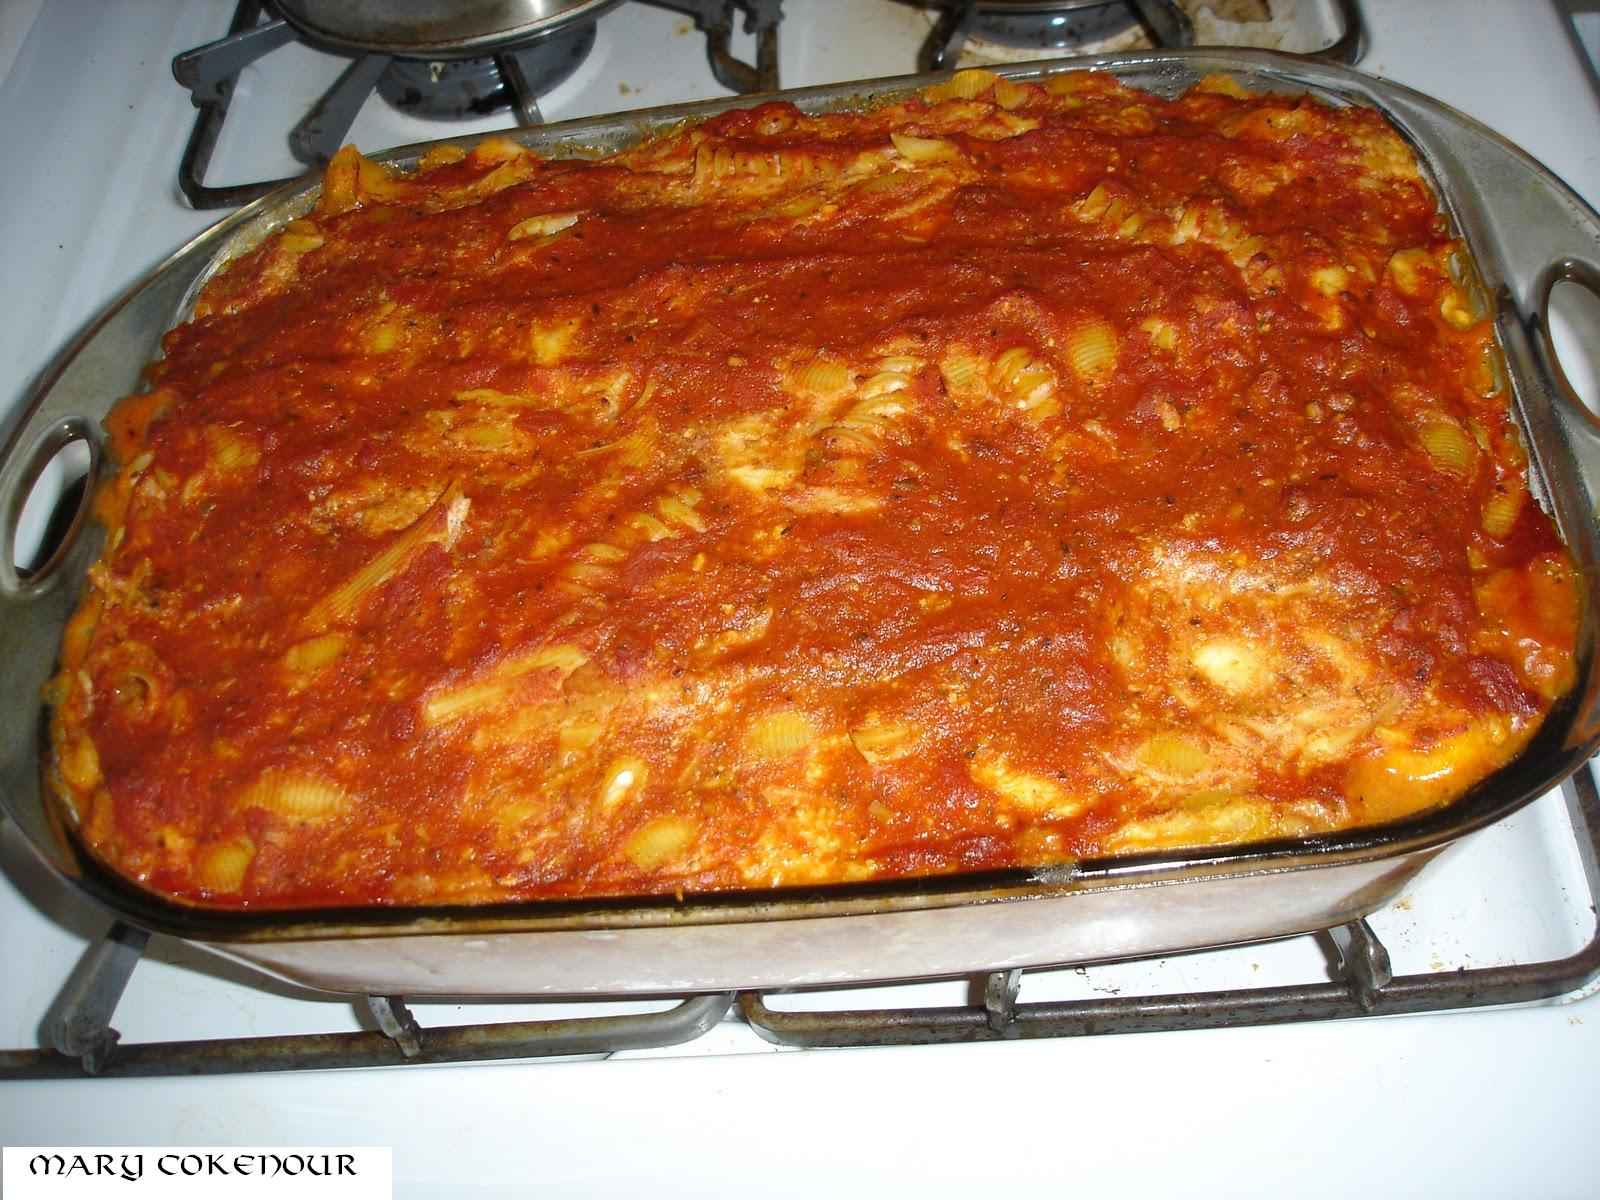 Baked Pasta Casserole Recipes — Dishmaps